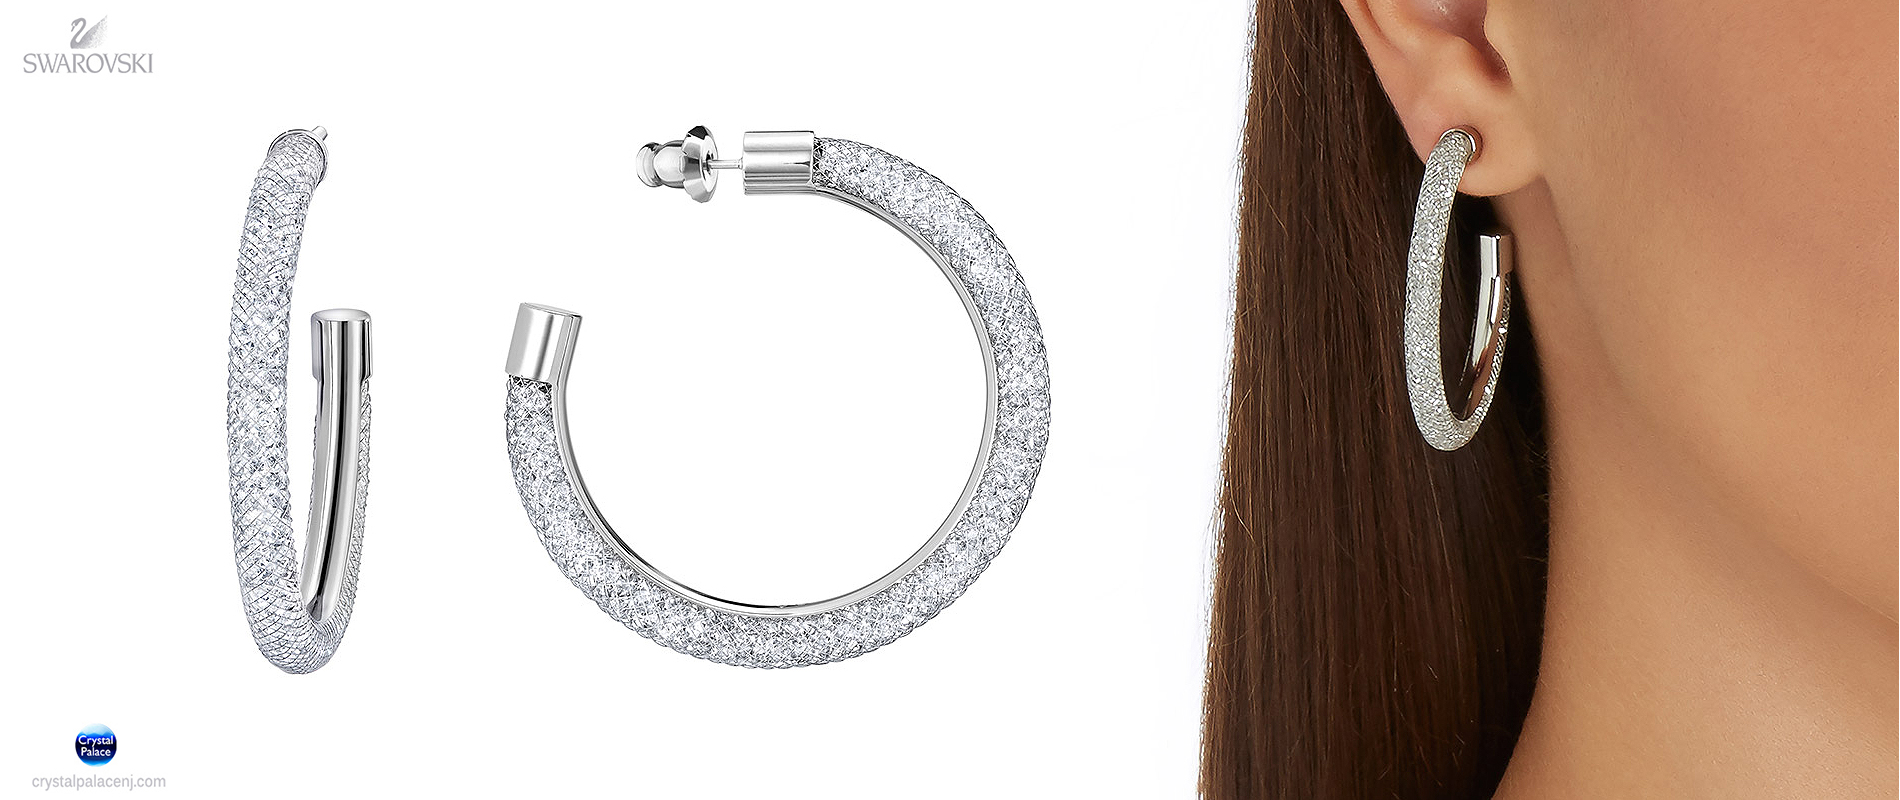 Swarovski Stardust Deluxe Hoop Pierced Earrings Crystal